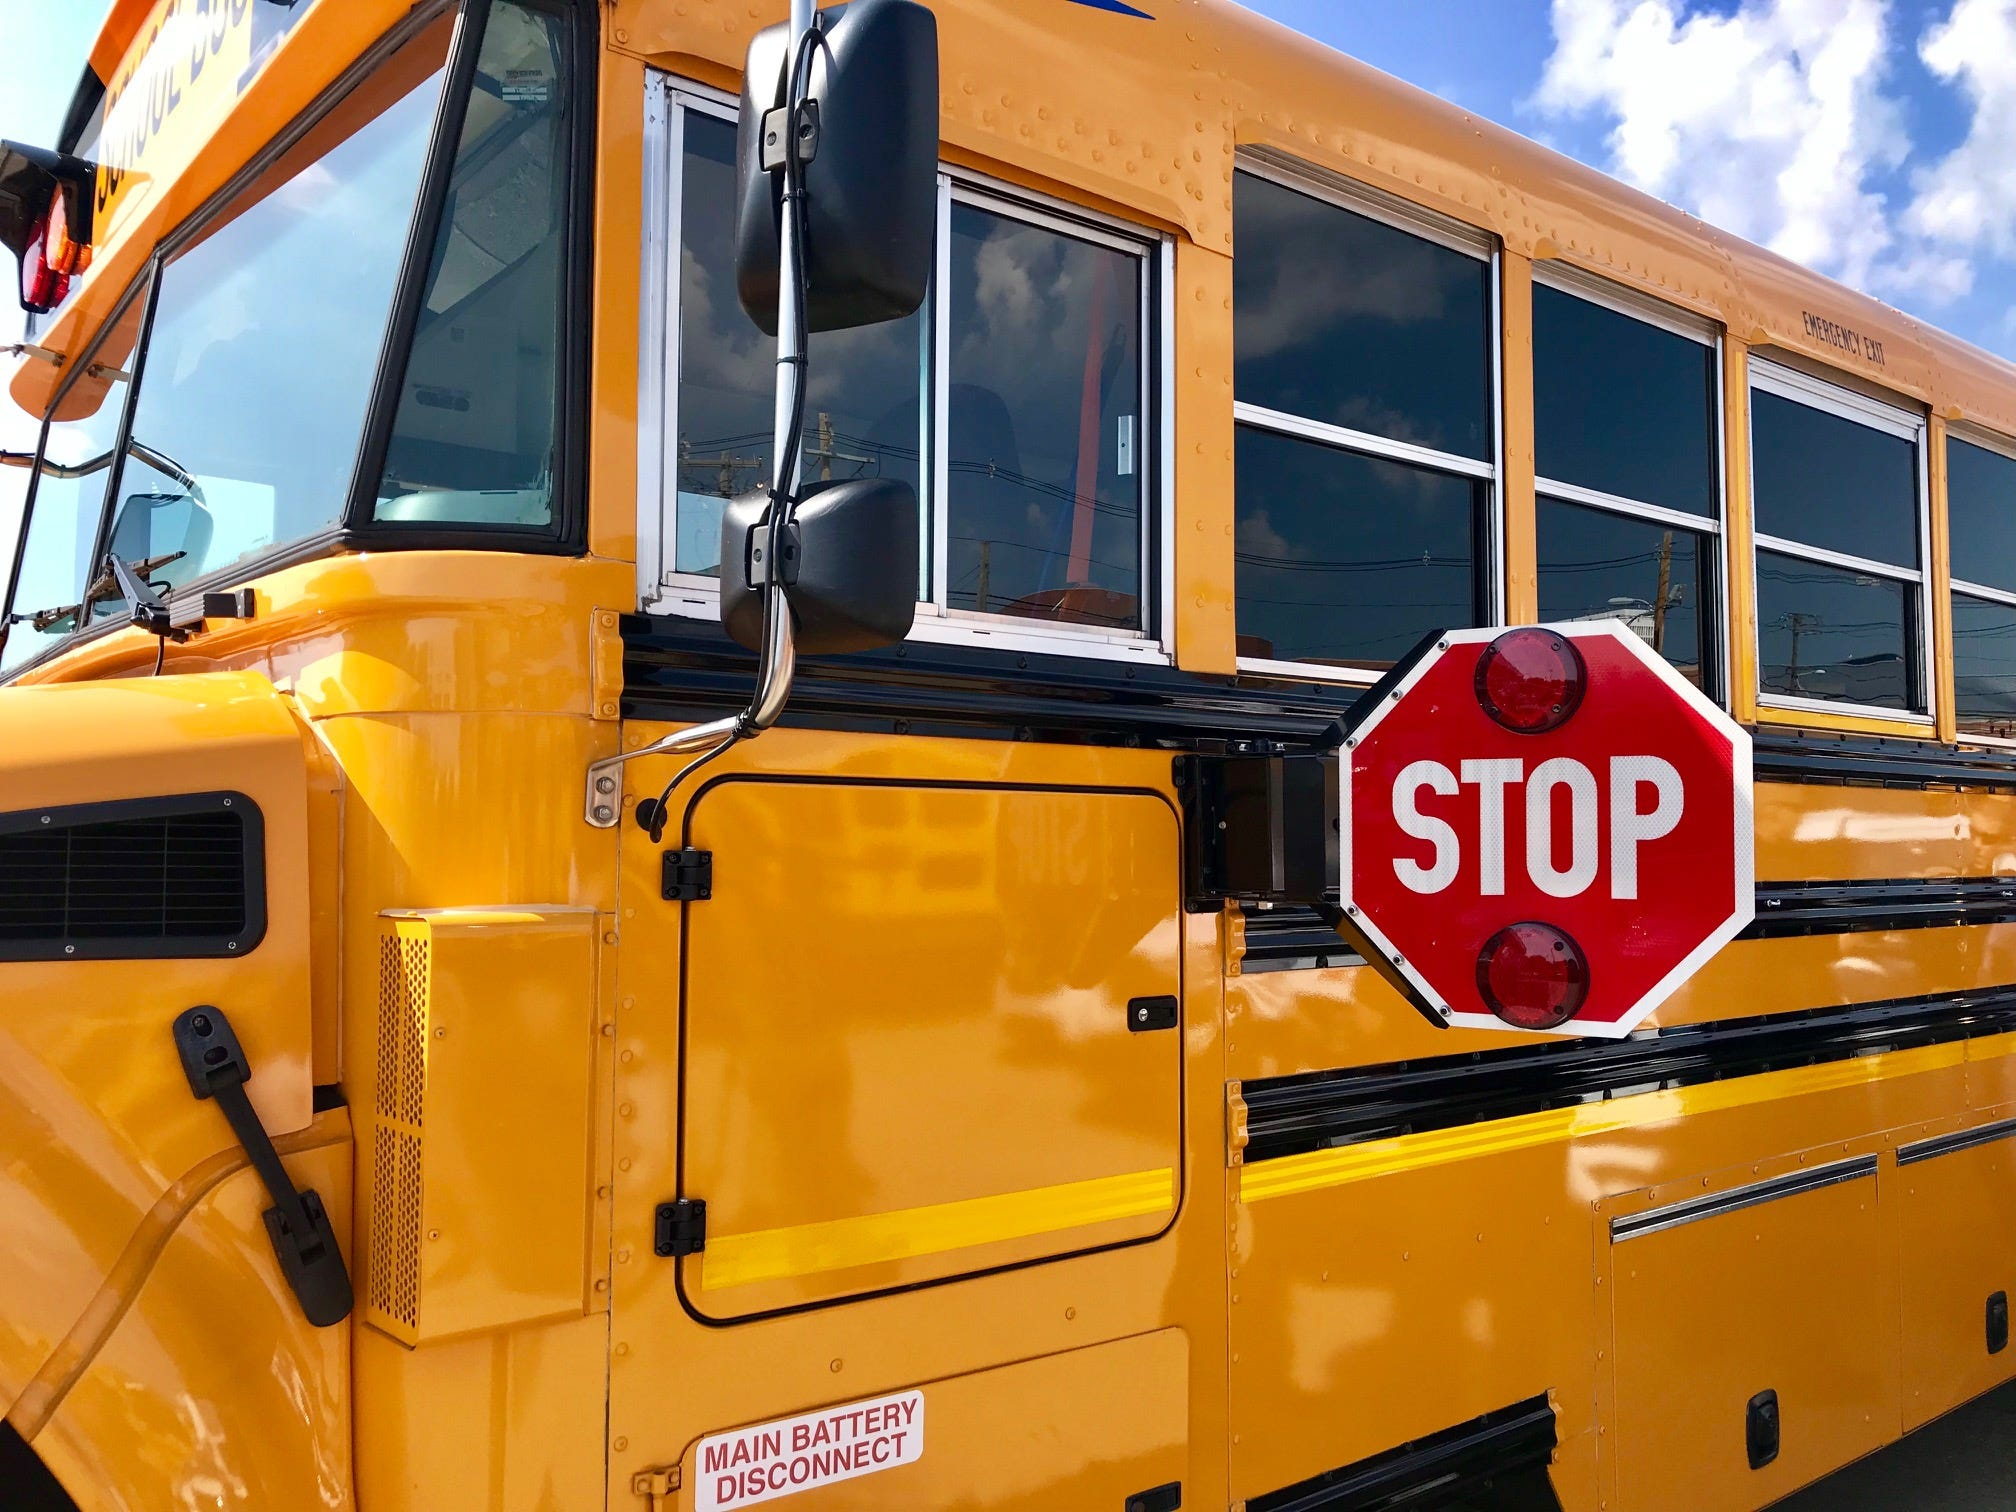 Evsc Buses Might Be Affected In Nationwide Bus Recall